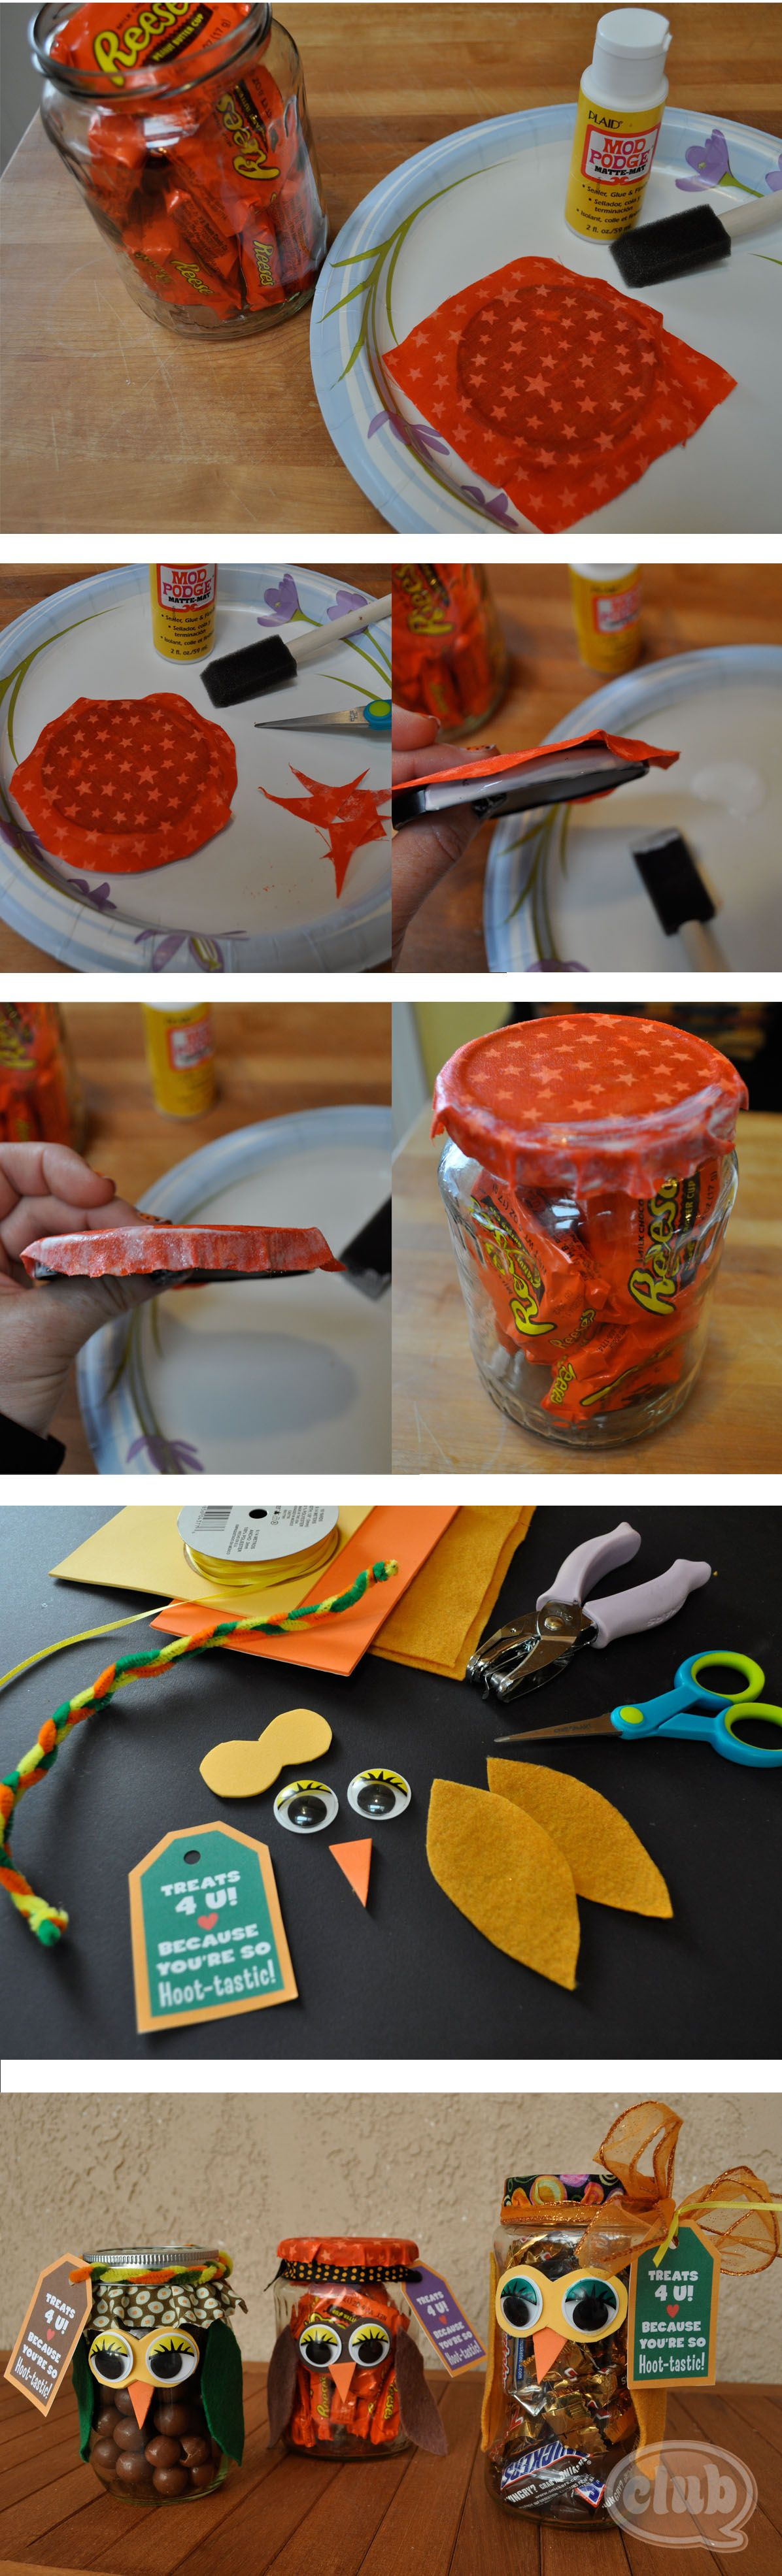 Upcycle glass jar, fill with candy, mod podge fabric on lid, add owl features.